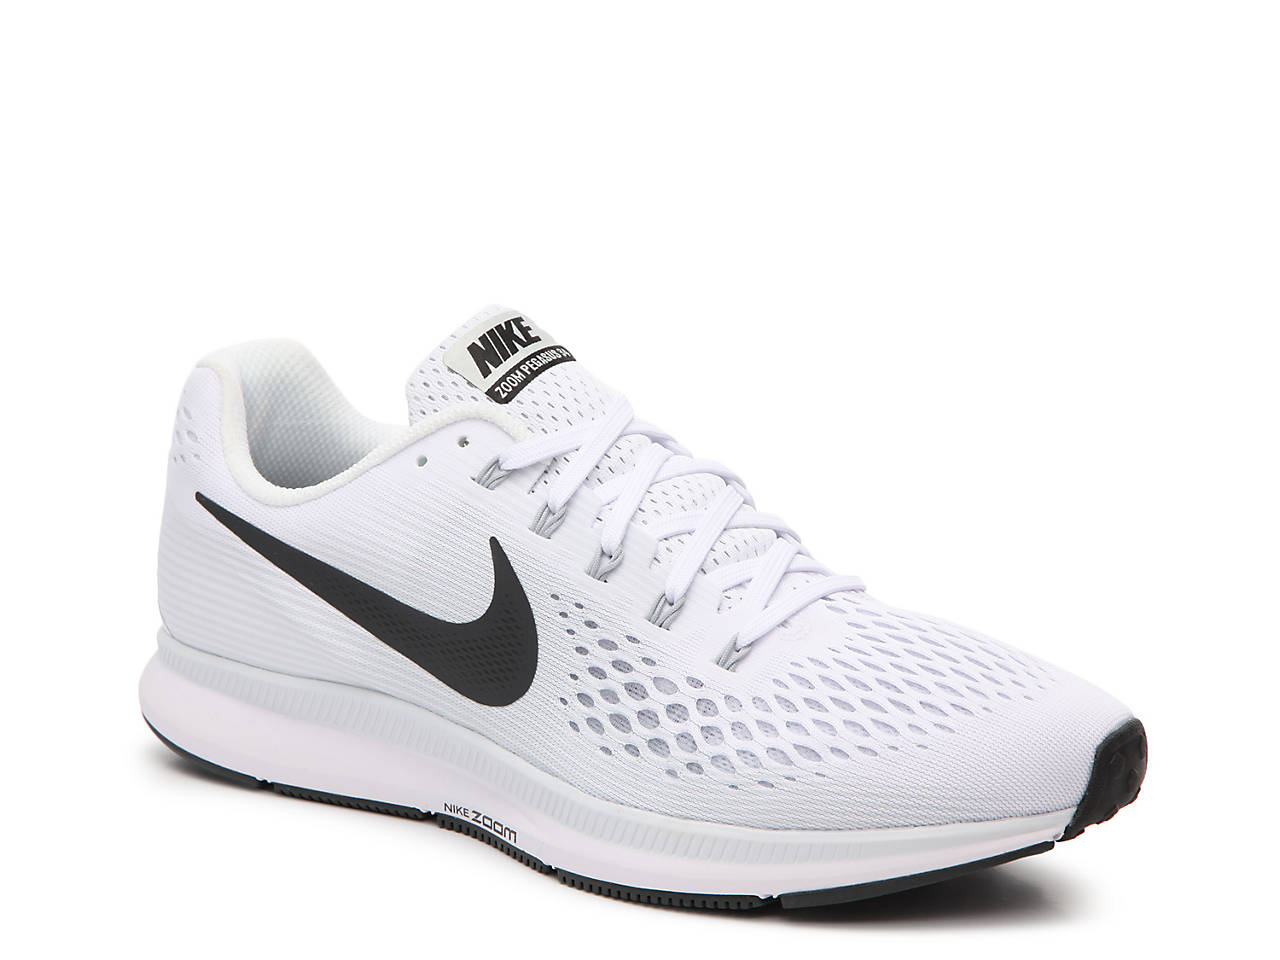 59898b17c2b Nike Air Zoom Pegasus 34 Lightweight Running Shoe - Men s Men s ...